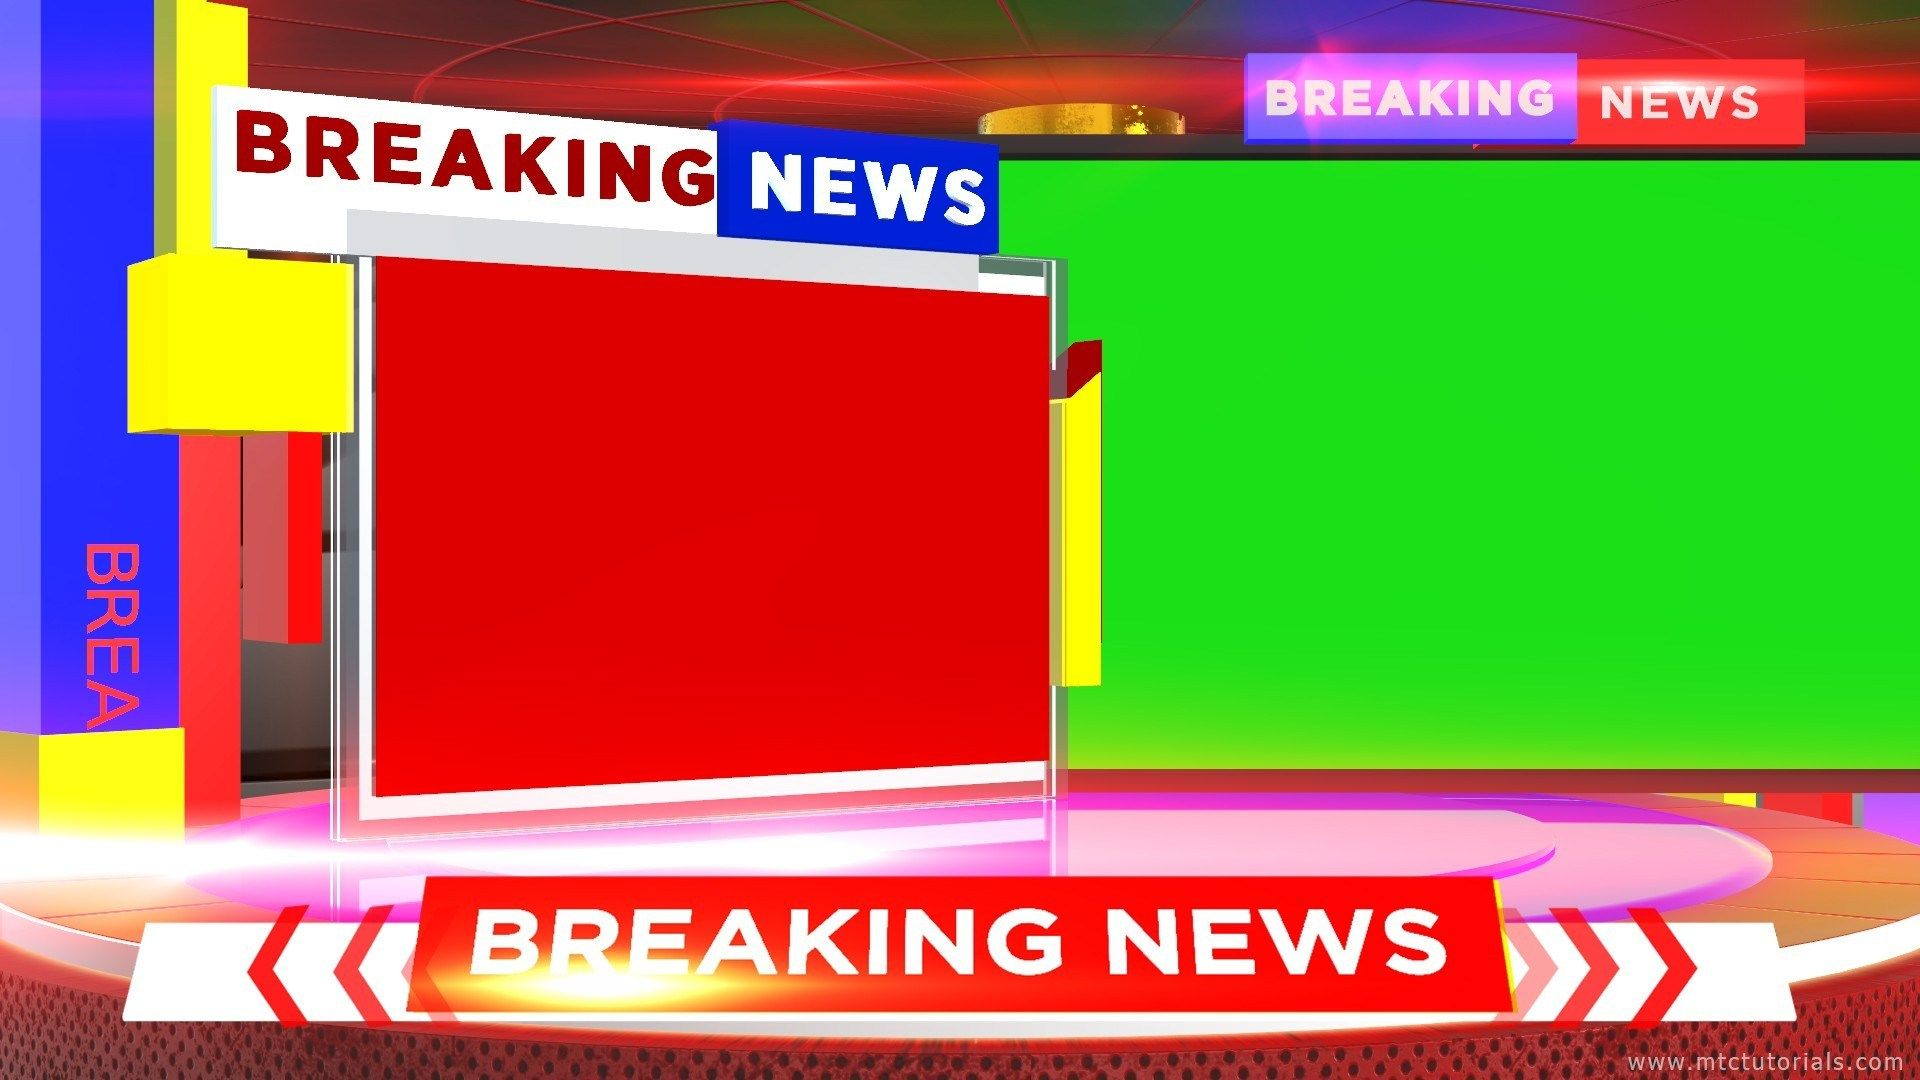 Adobe After Effects Free Breaking News Templates ...